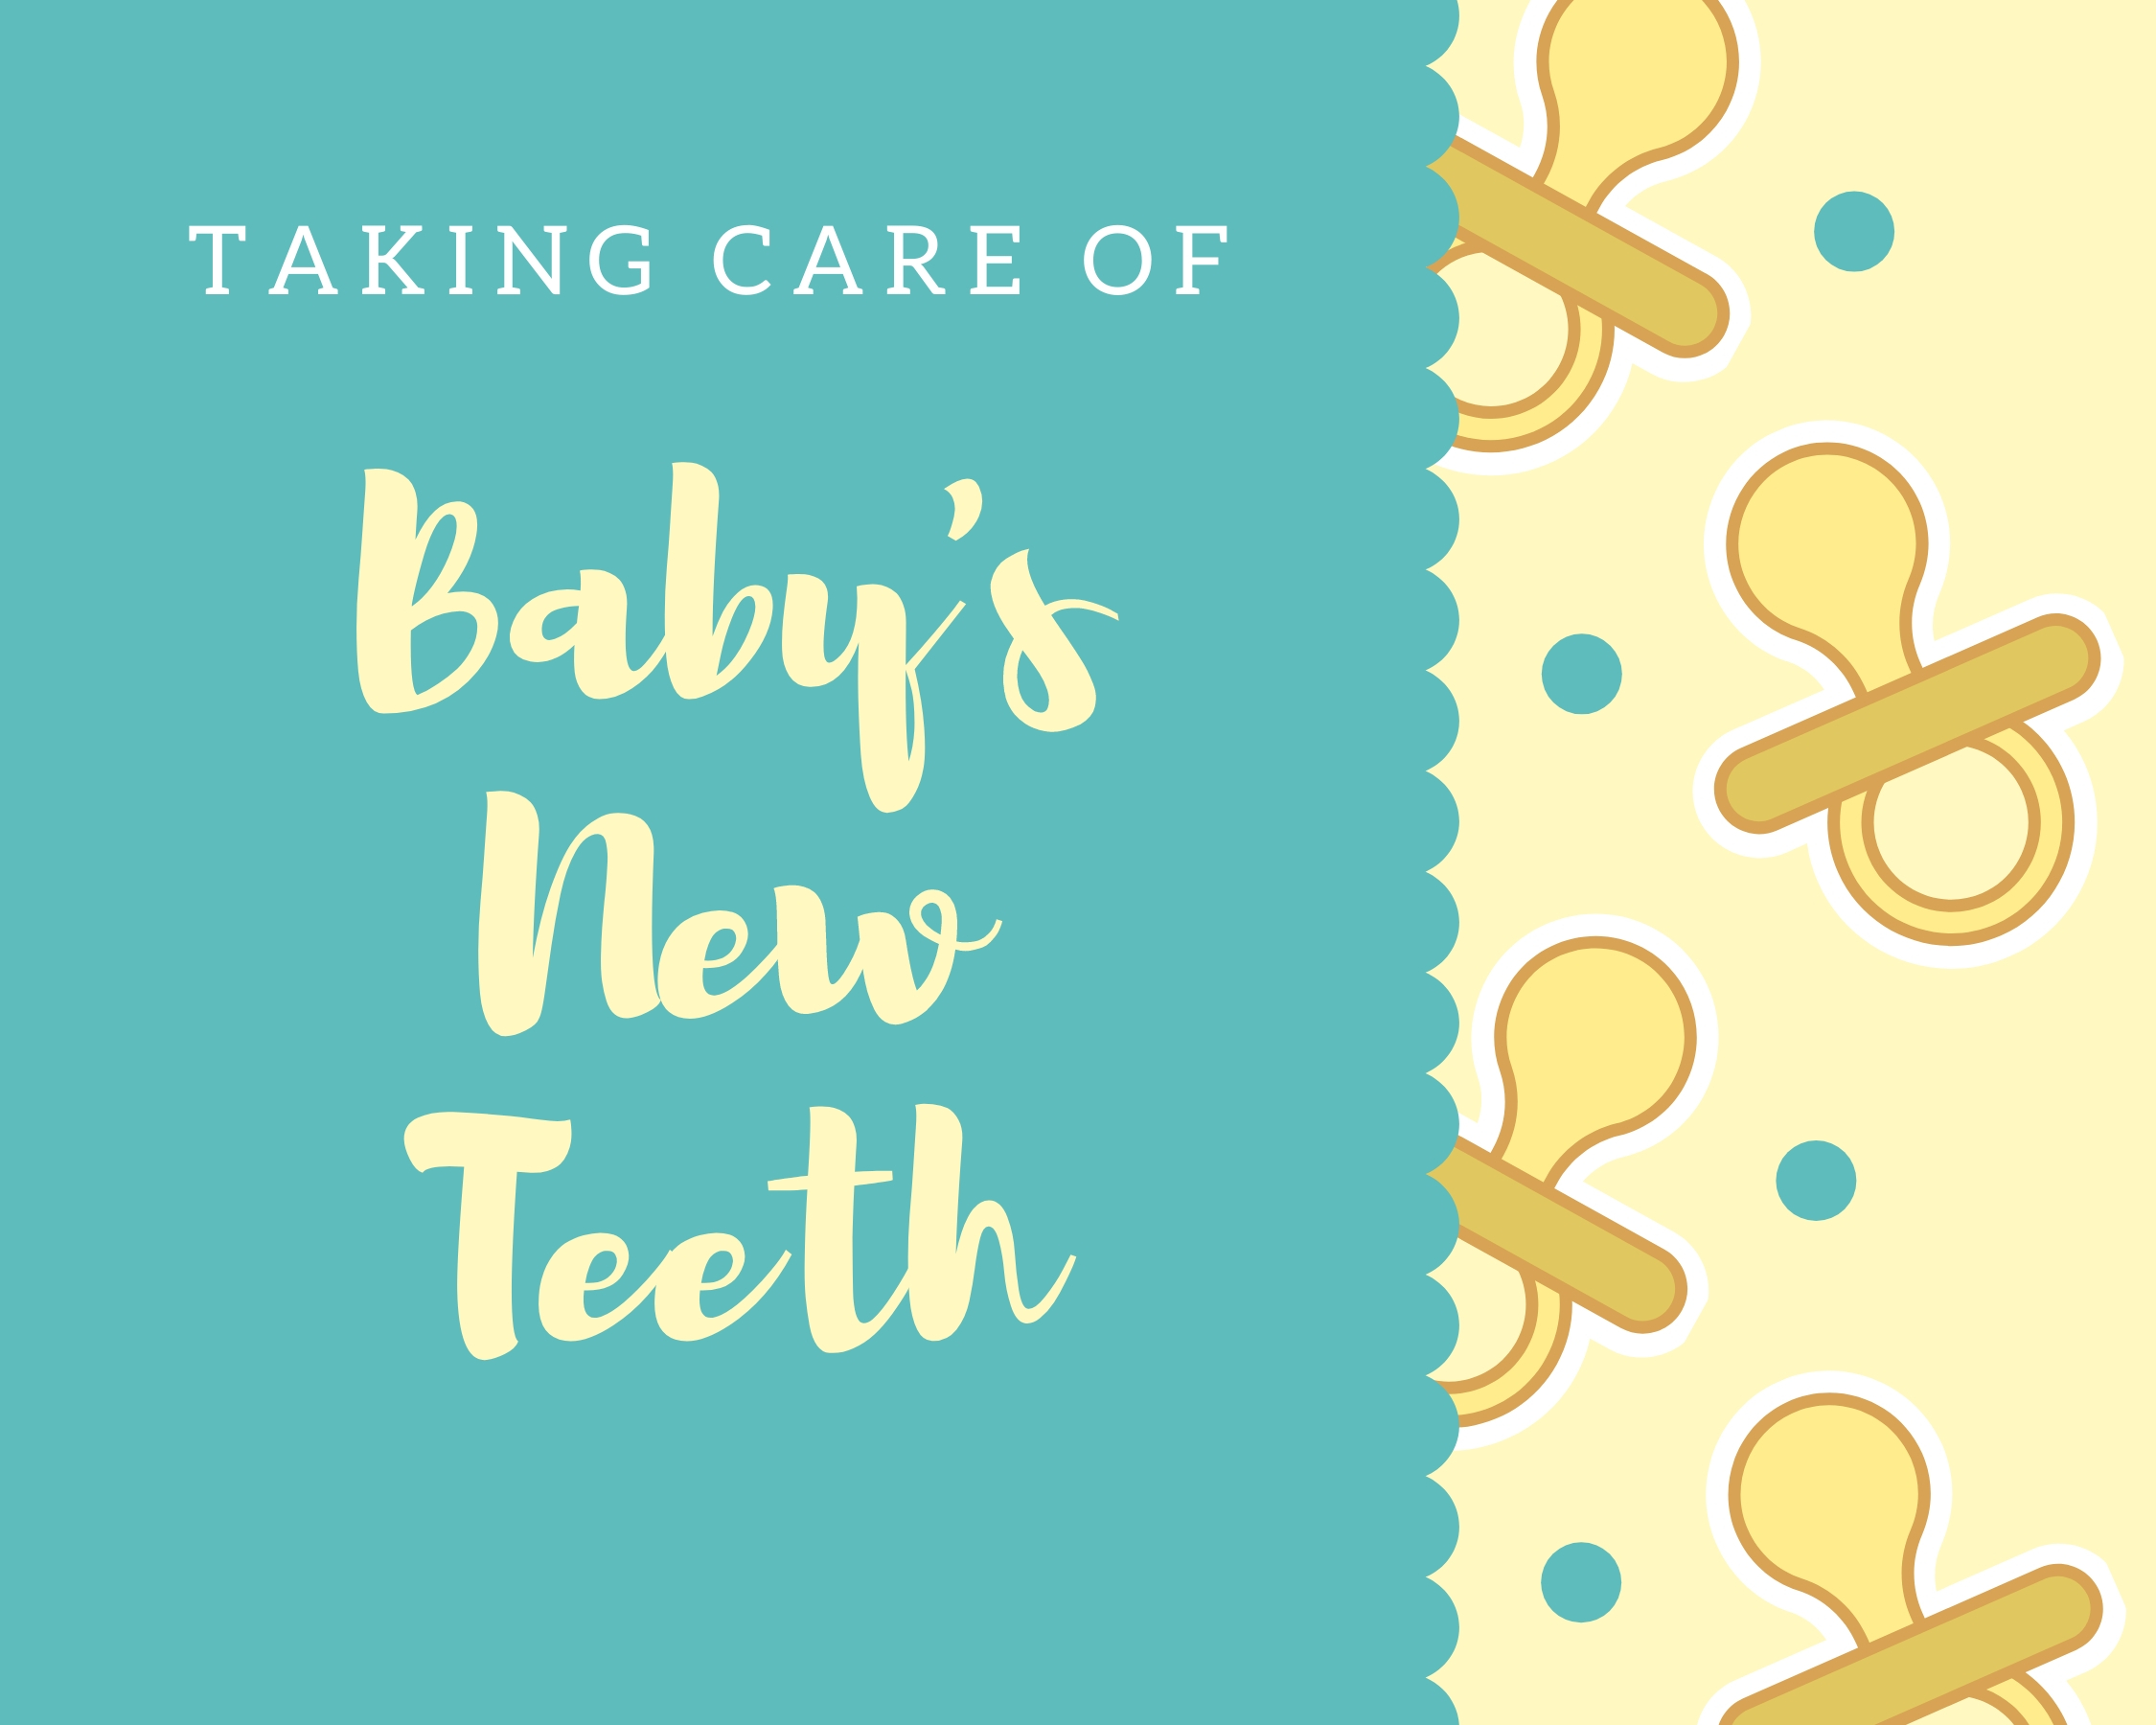 signs of teething baby